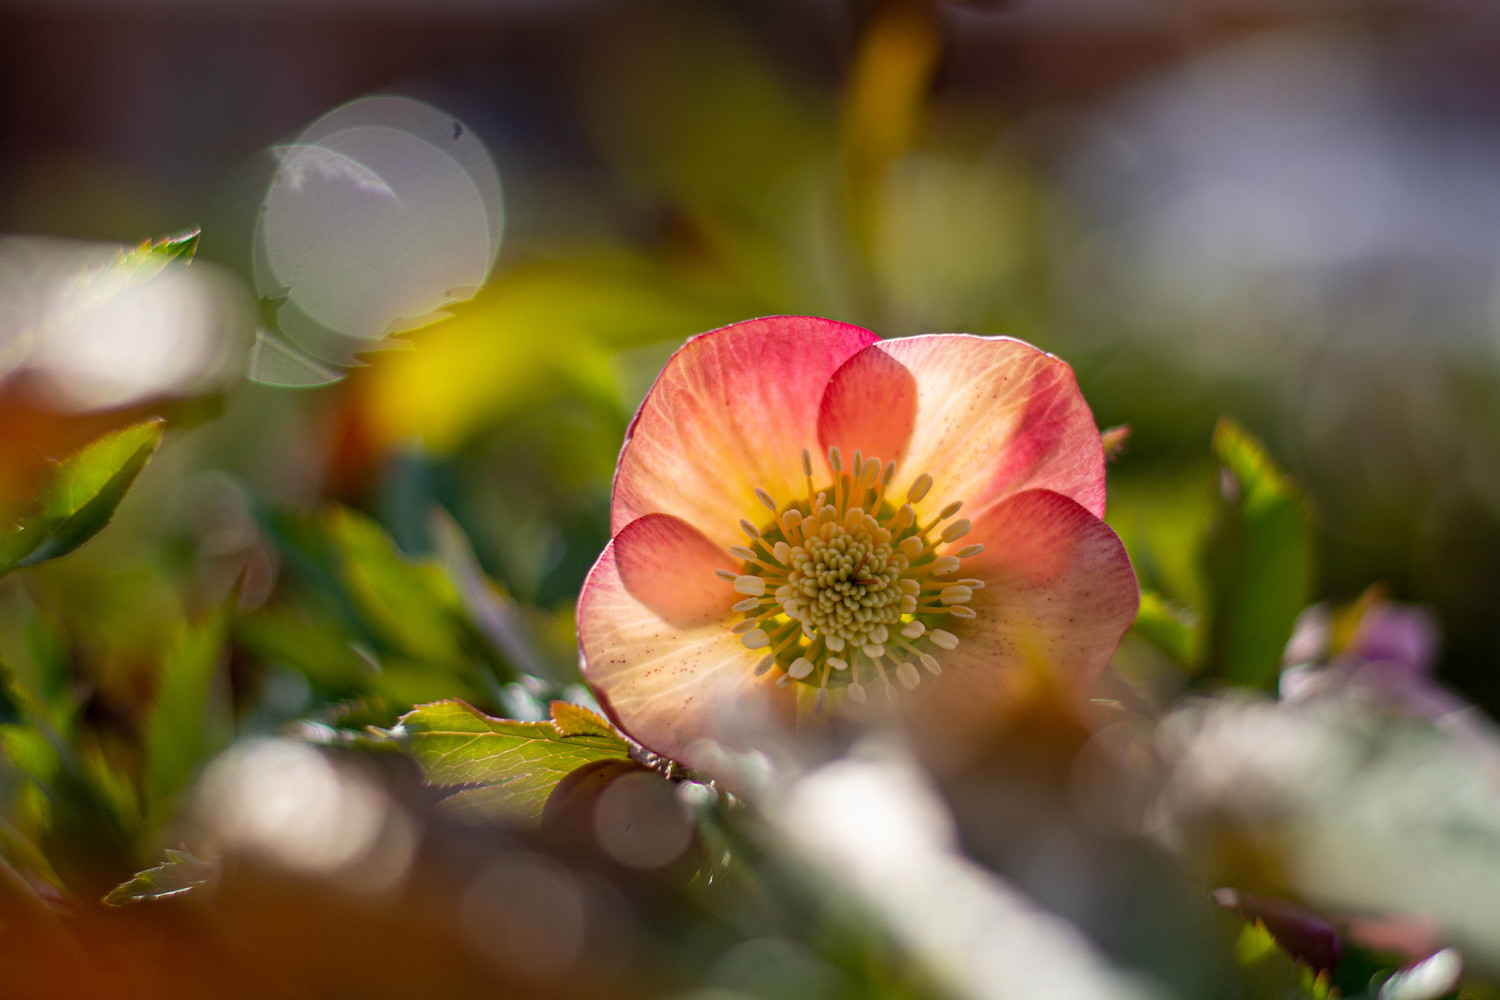 beginner photography tips – a close-up photo of a flower with backlight